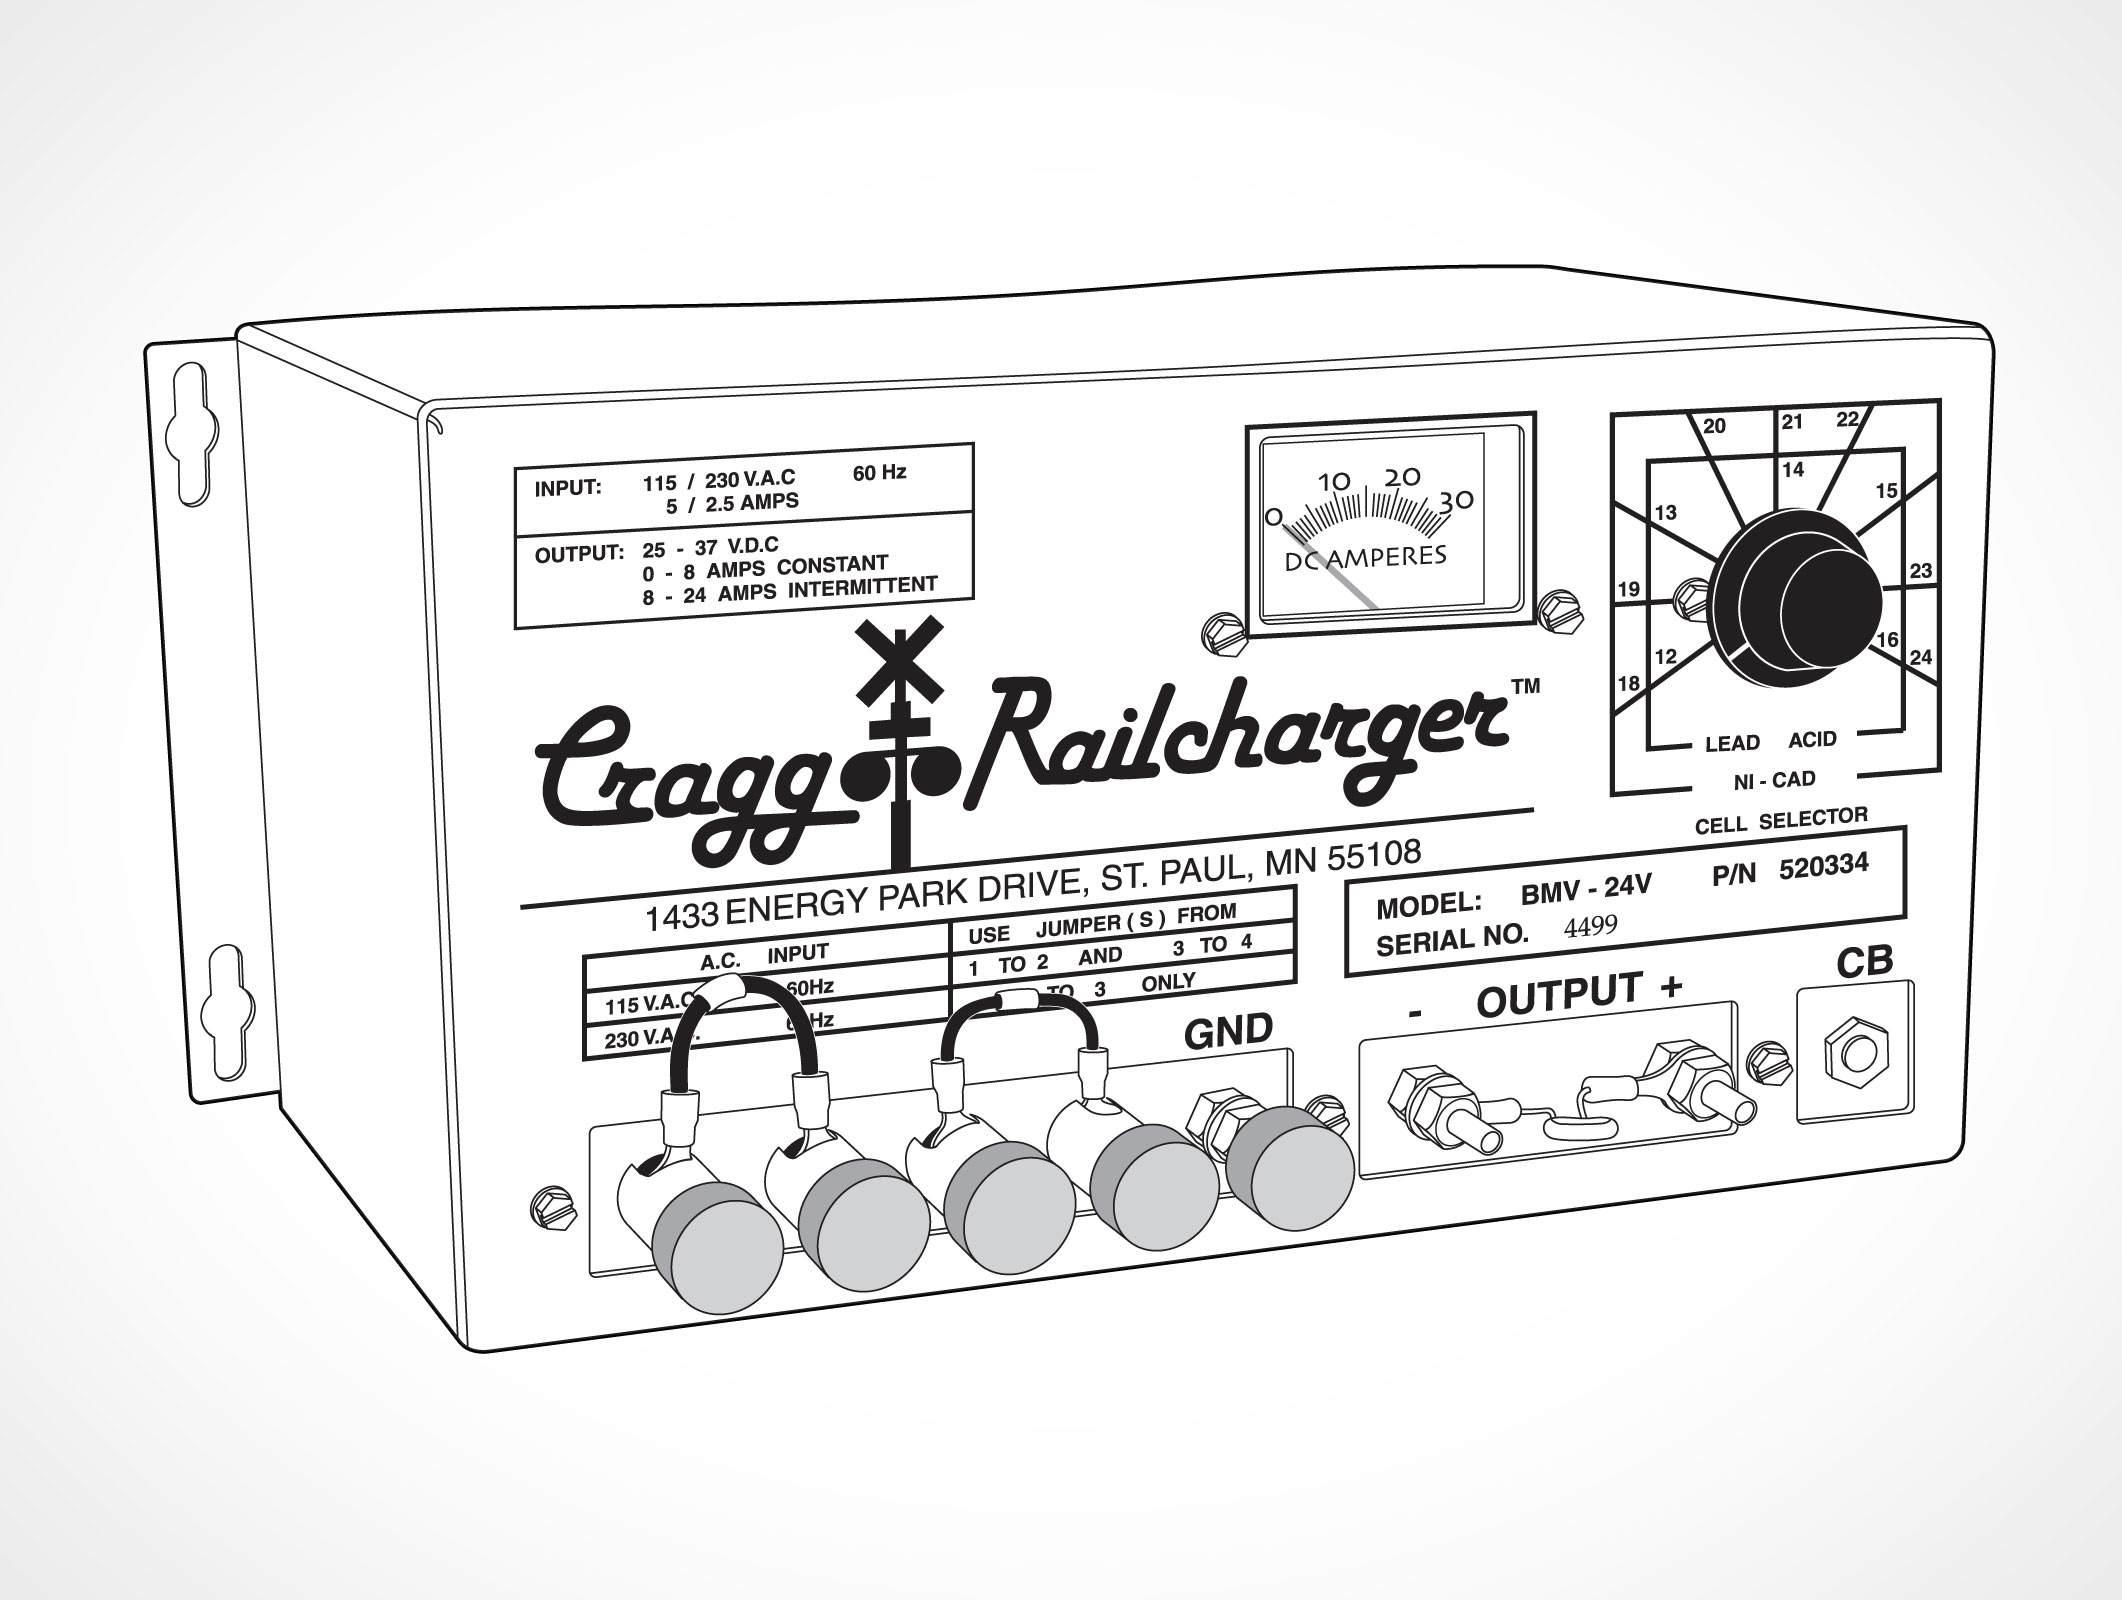 Cragg Railcharger Automatic Battery Charger